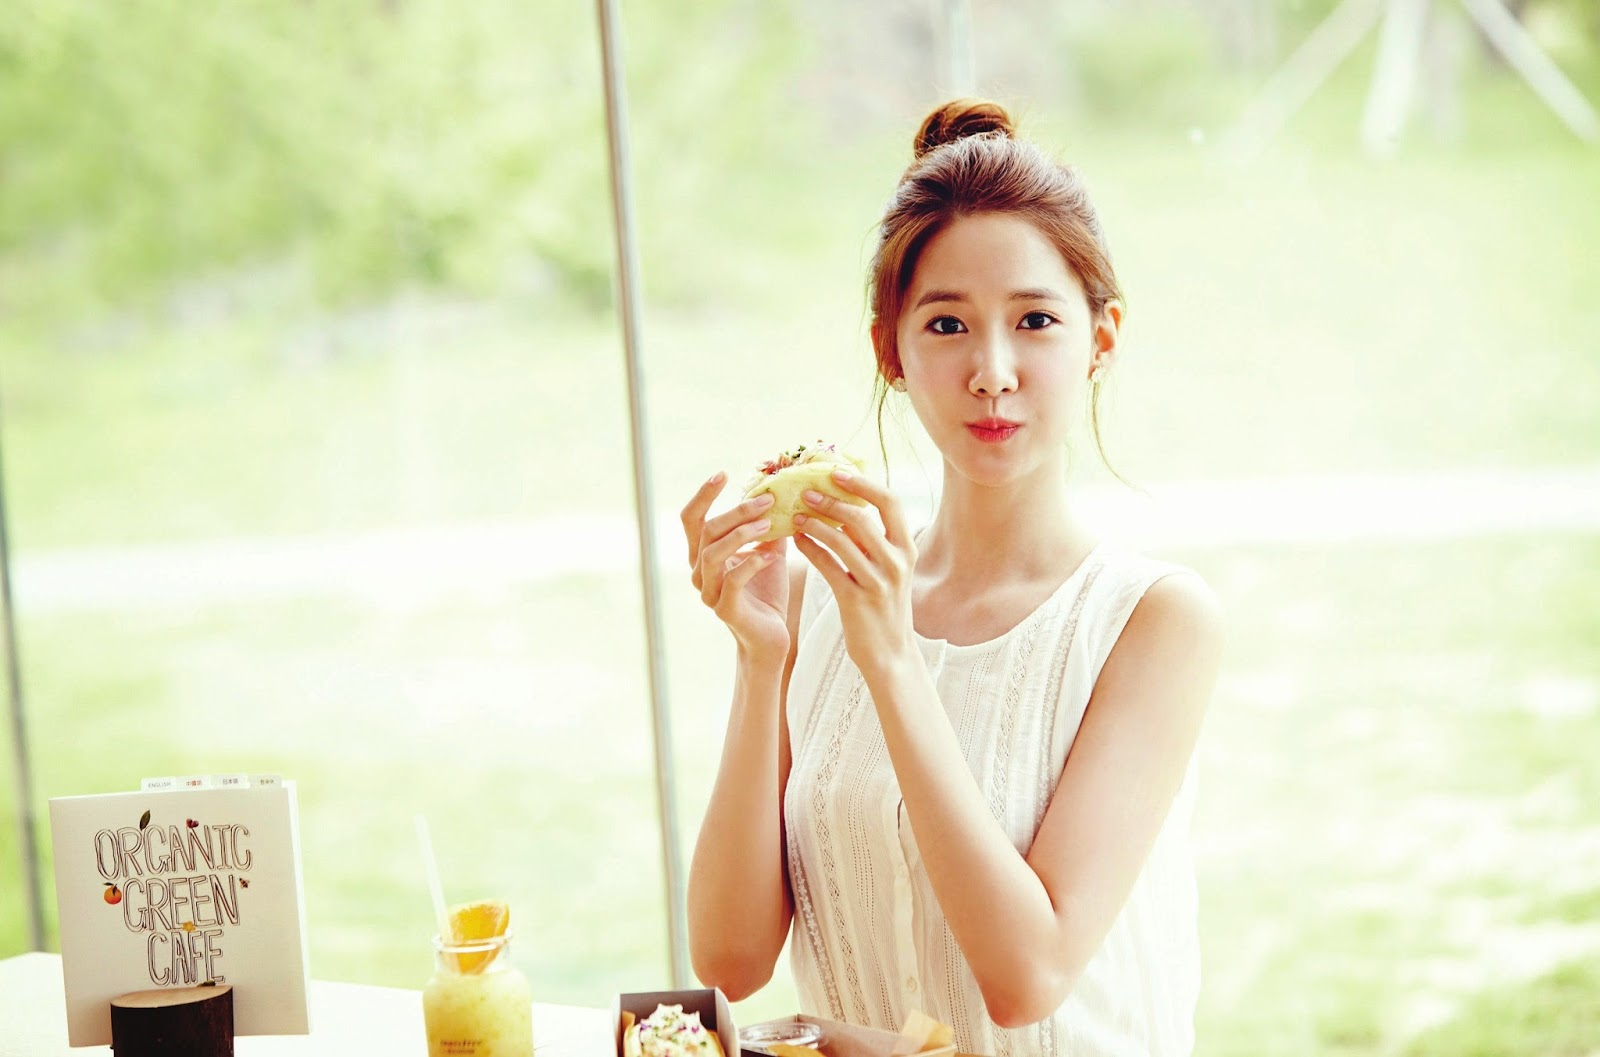 SNSD YoonA Innisfree Organic Green Cafe Wallpaper HD Hot Sexy Beauty 1600x1057